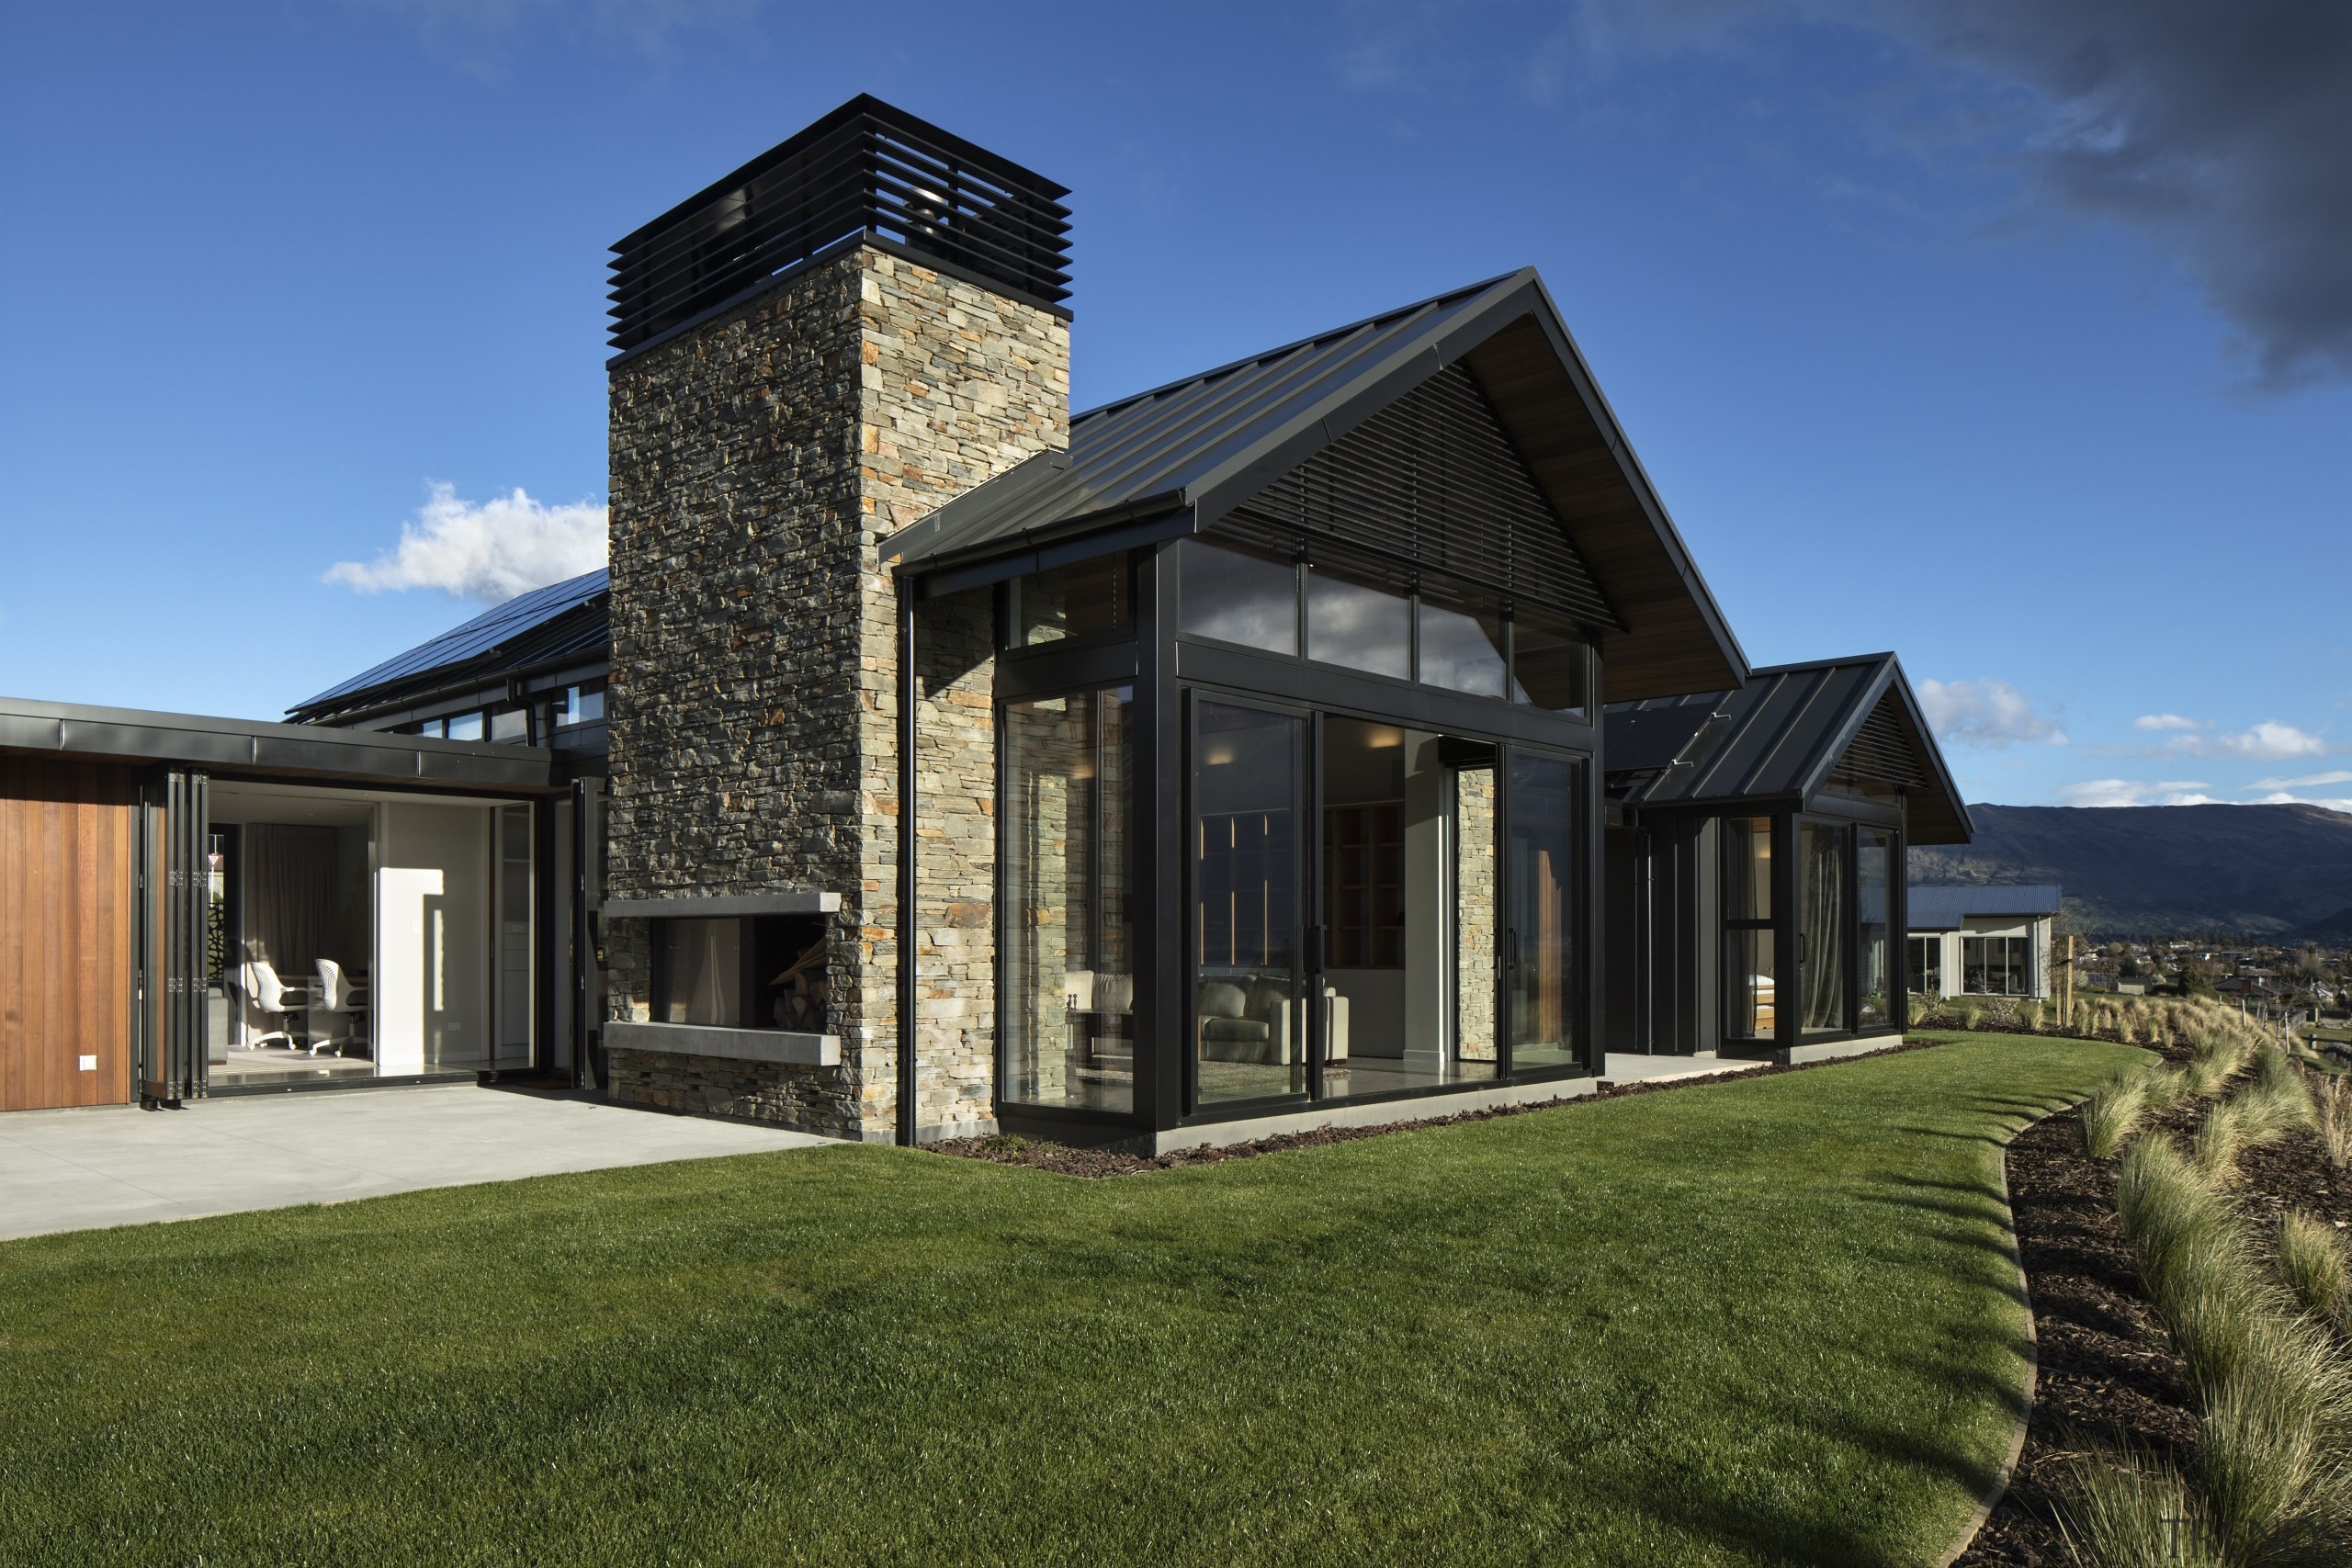 Centre of attention – to ensure the central architecture, home, house, roof, siding, Condon Scott Architects